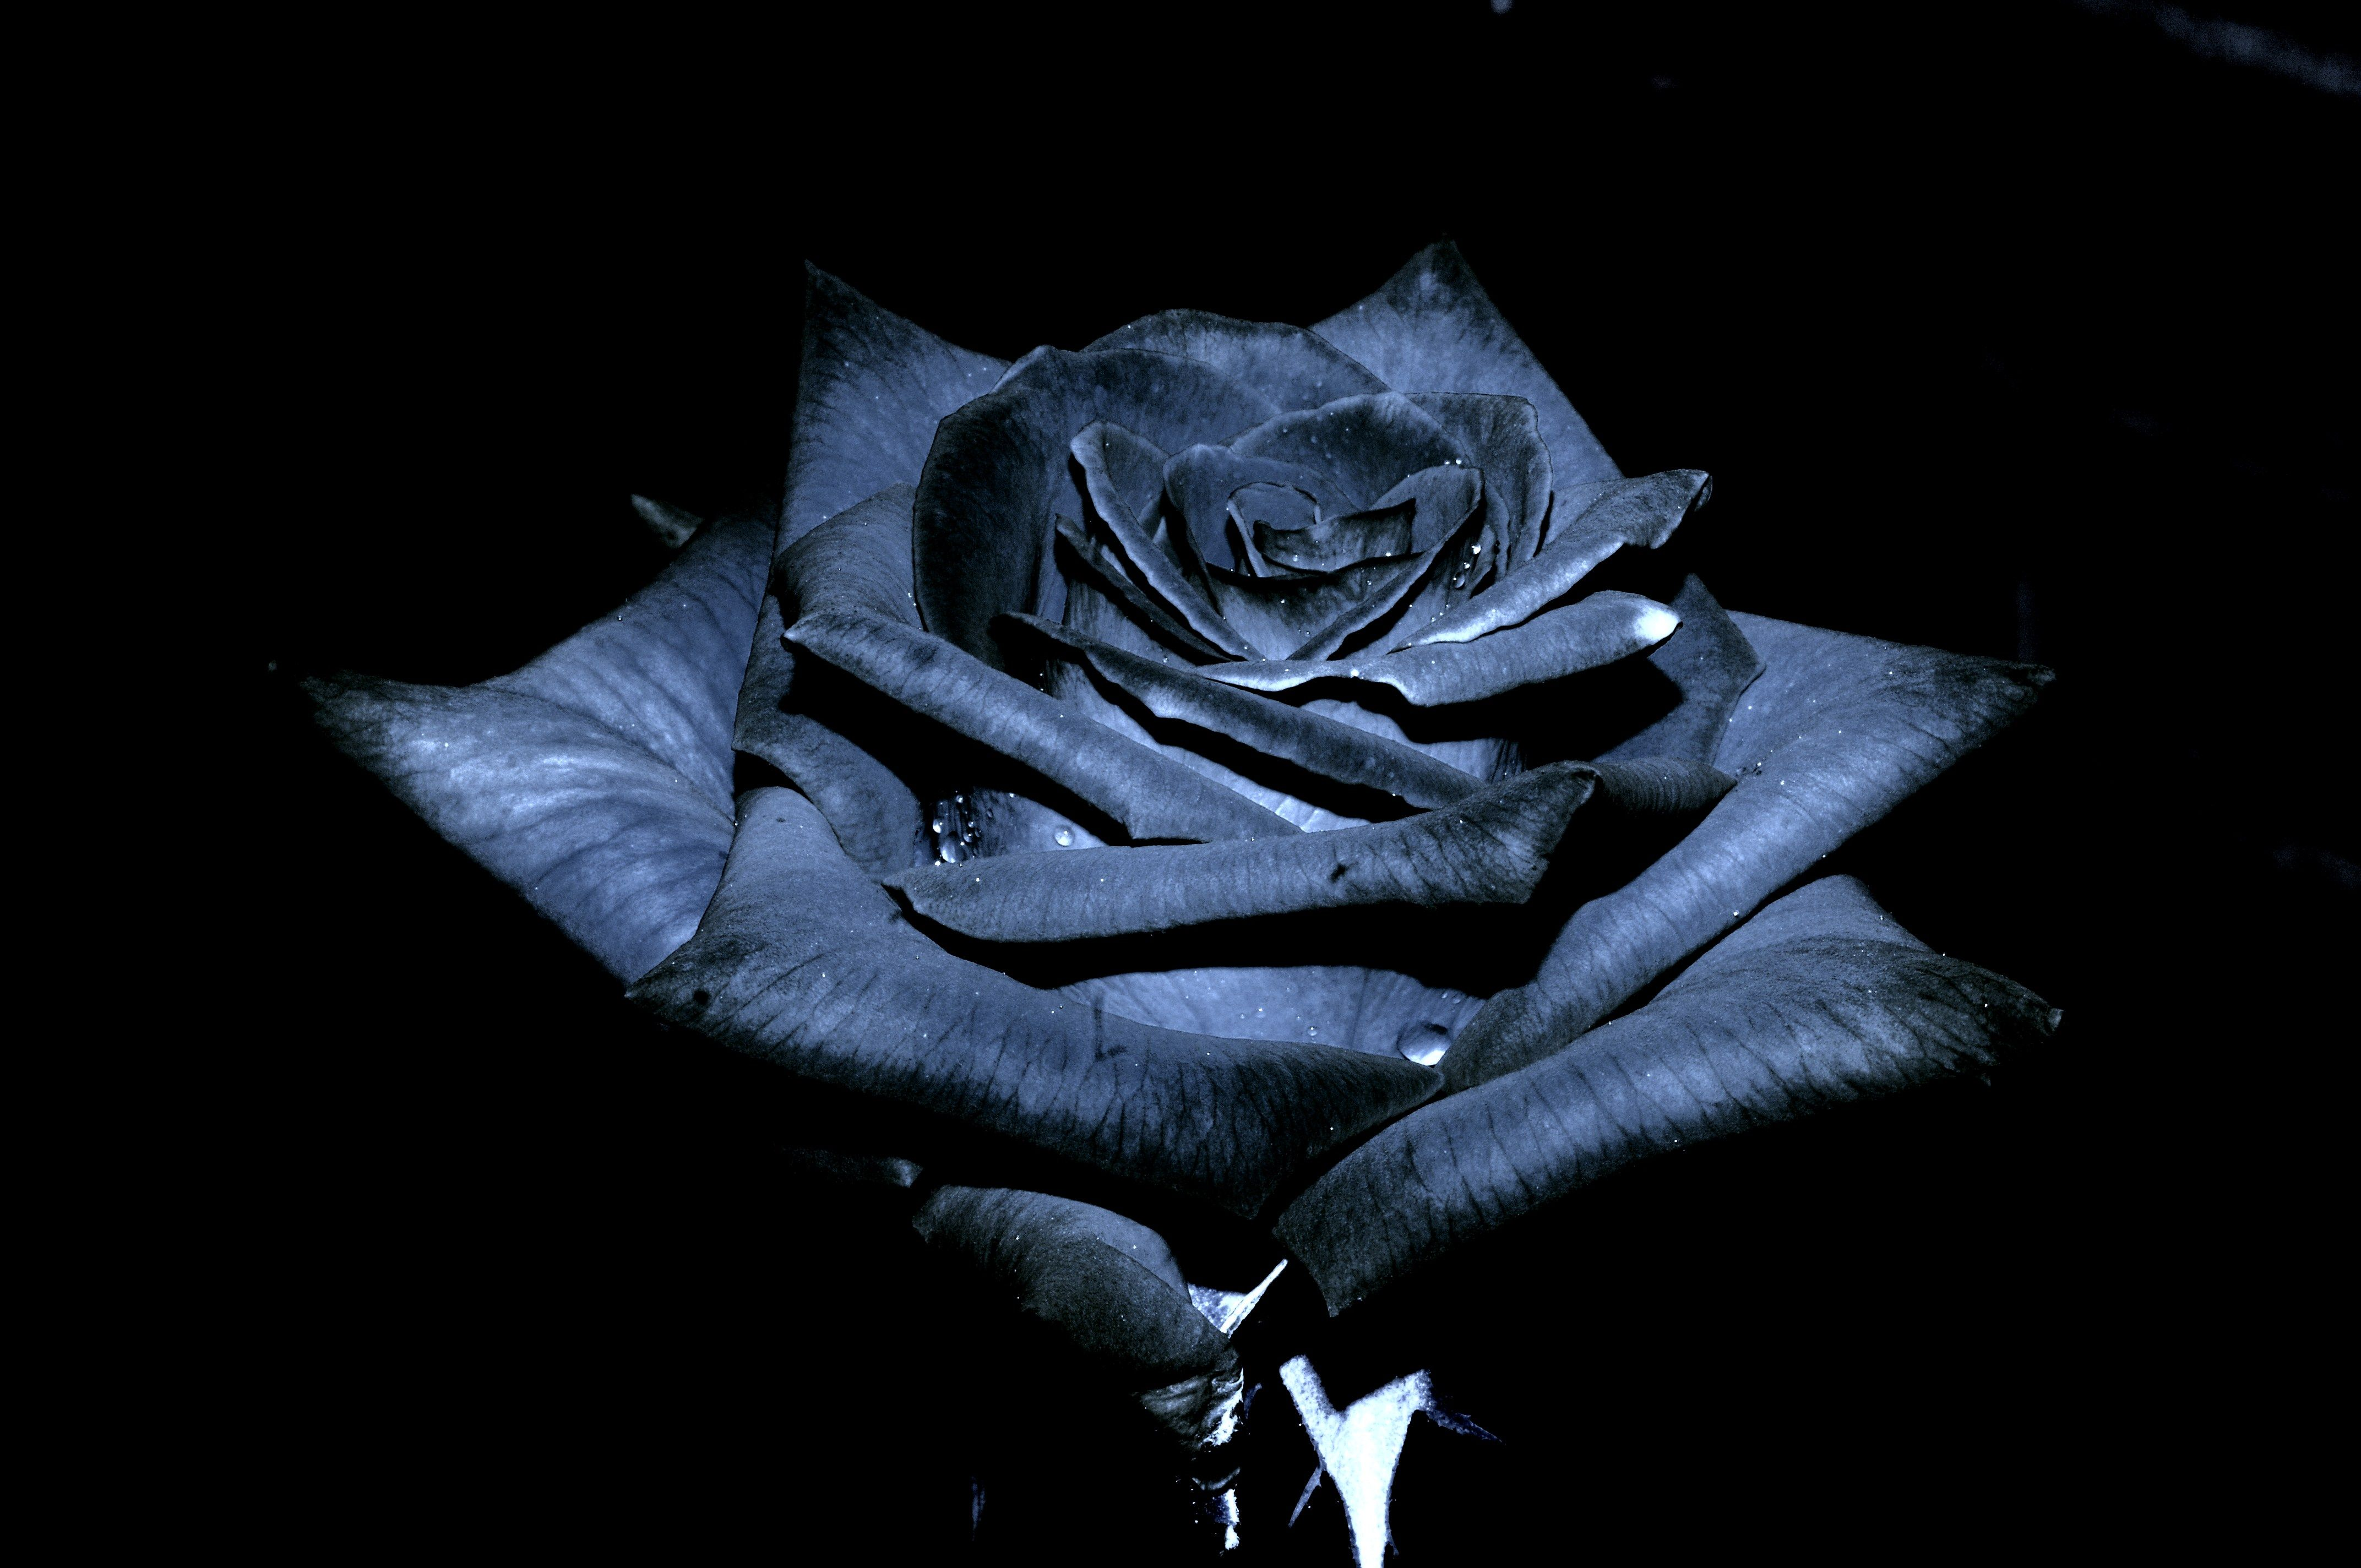 Black Roses The Black Rose Of Texas By Jsf1 Black Roses Wallpaper Black Rose Black Rose Flower